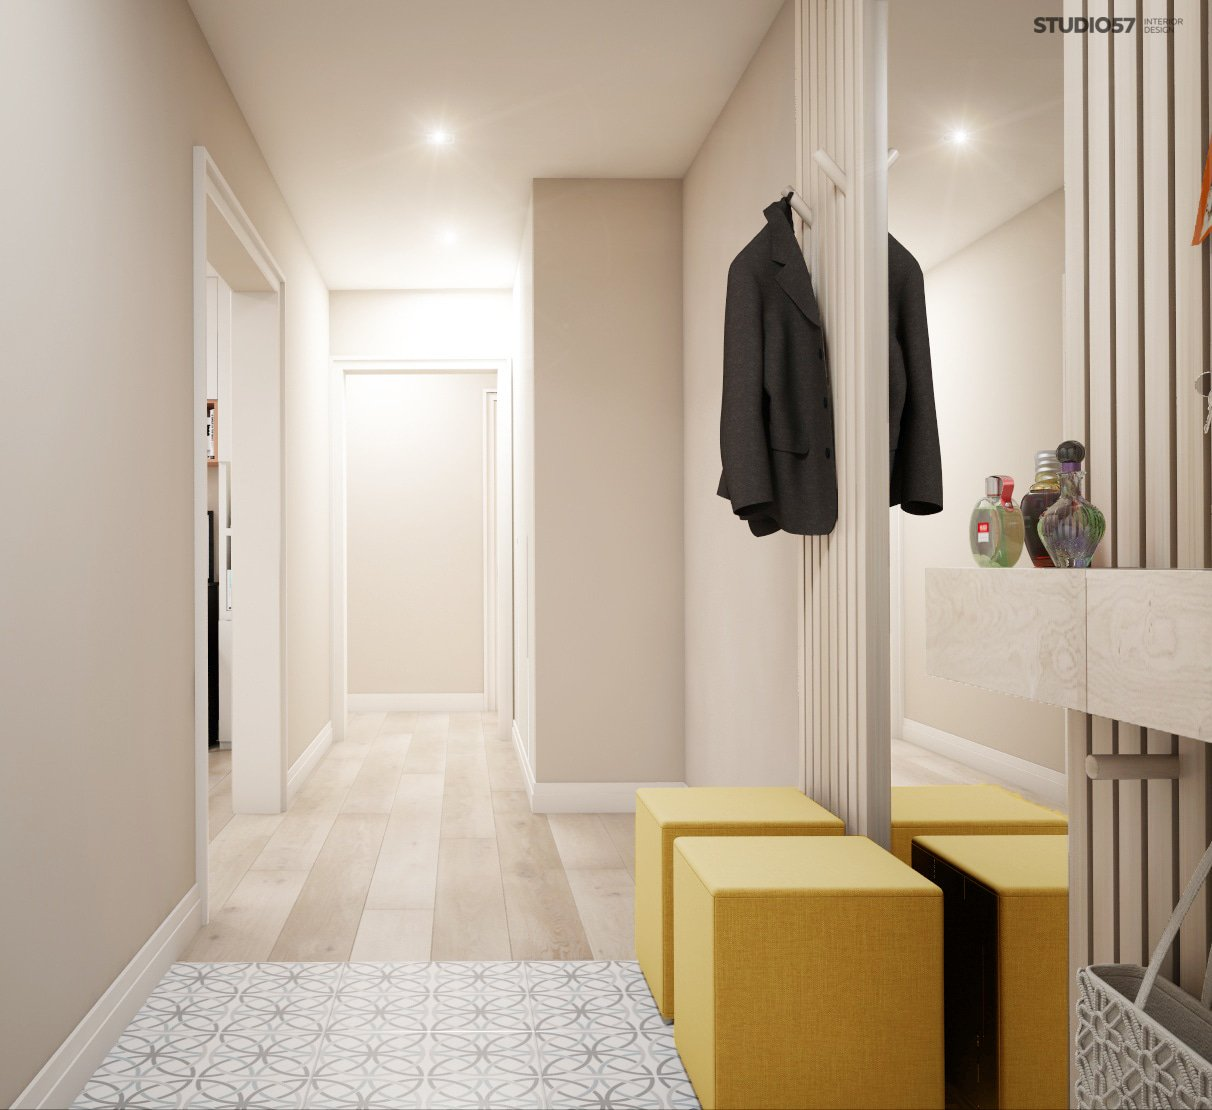 Interior of the hallway in the style of modern classic photo